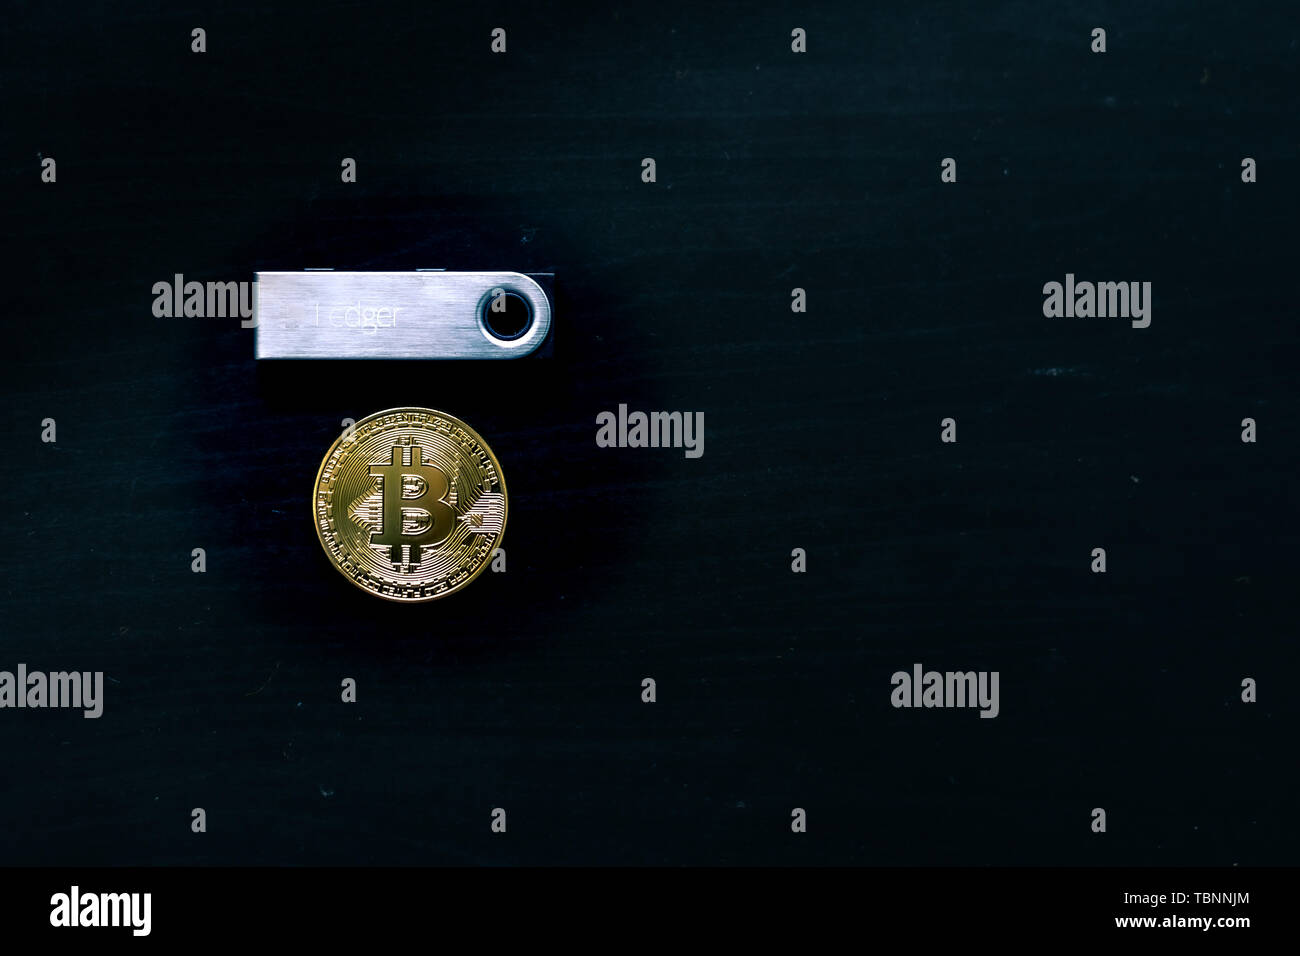 Physical bitcoin sitting underneath a Ledger Nano S secure cold wallet - Stock Image